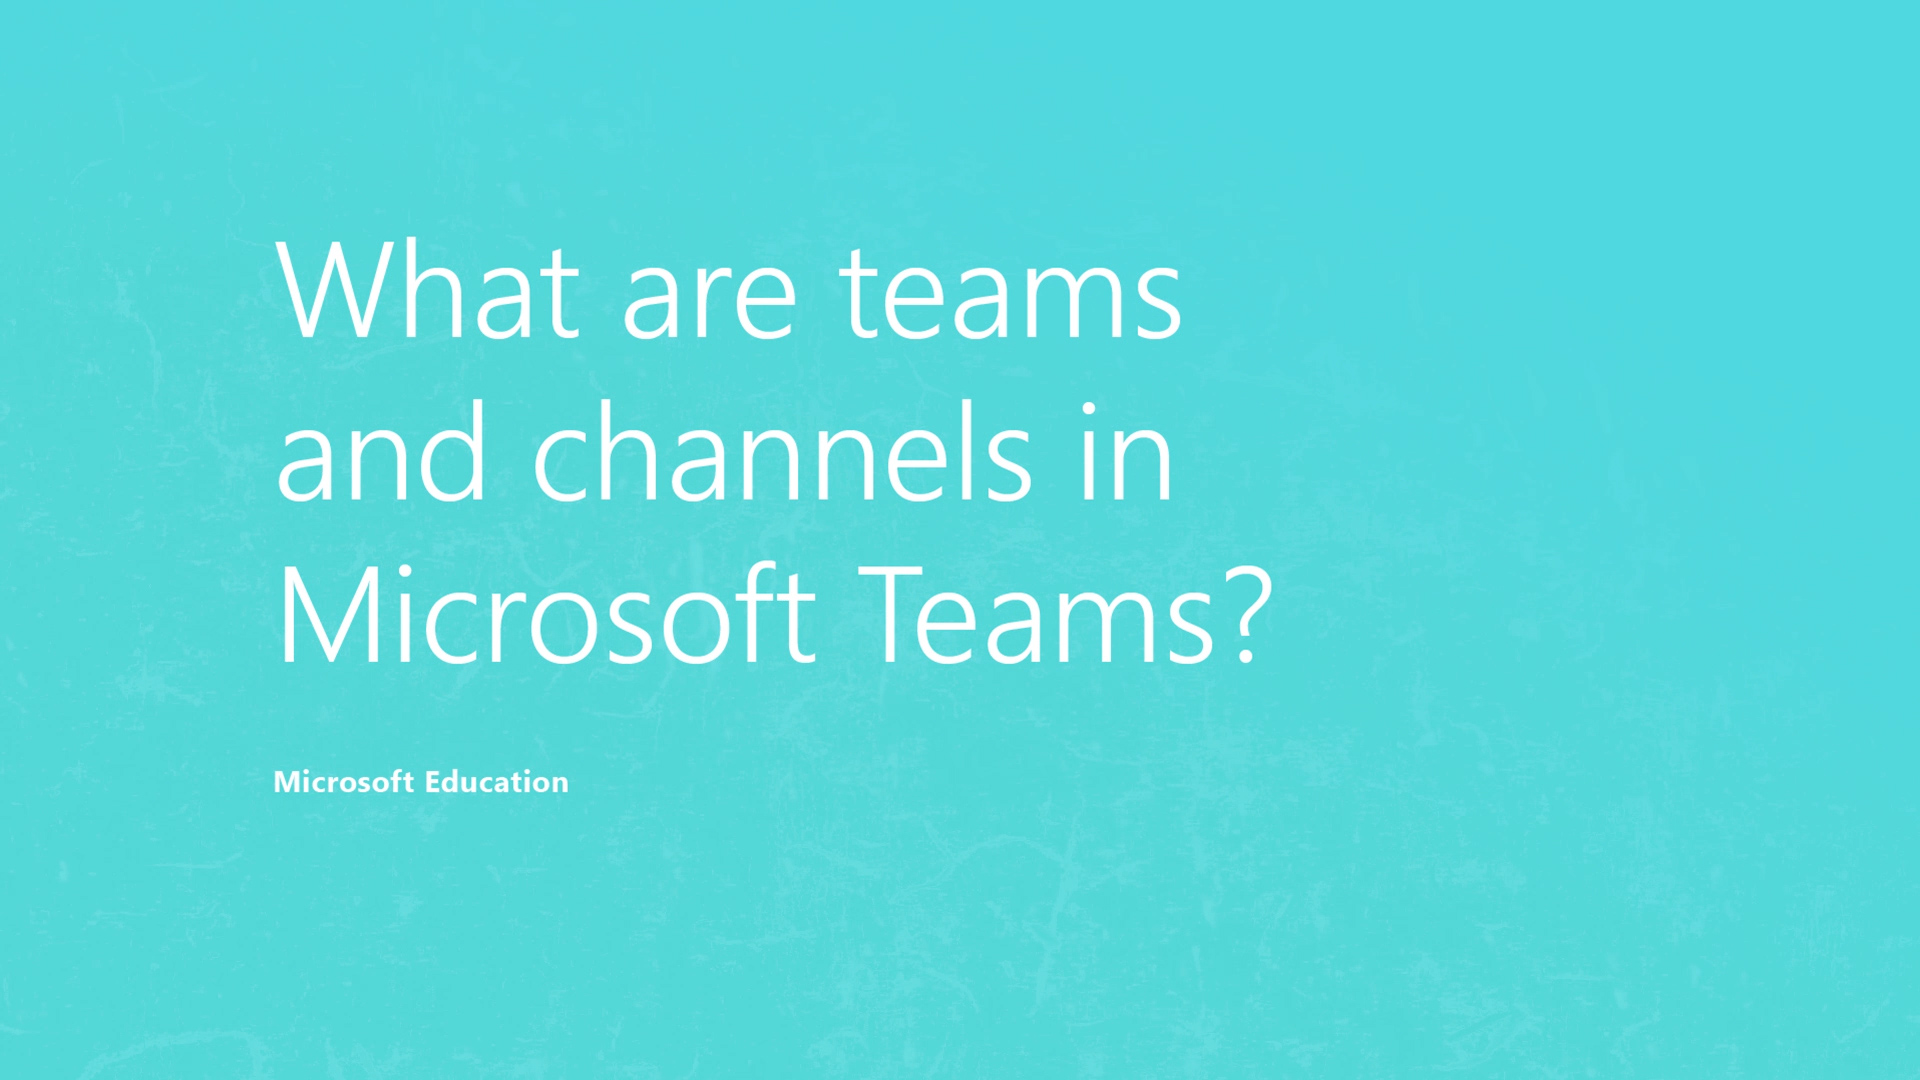 What are teams and channels in Microsoft Teams